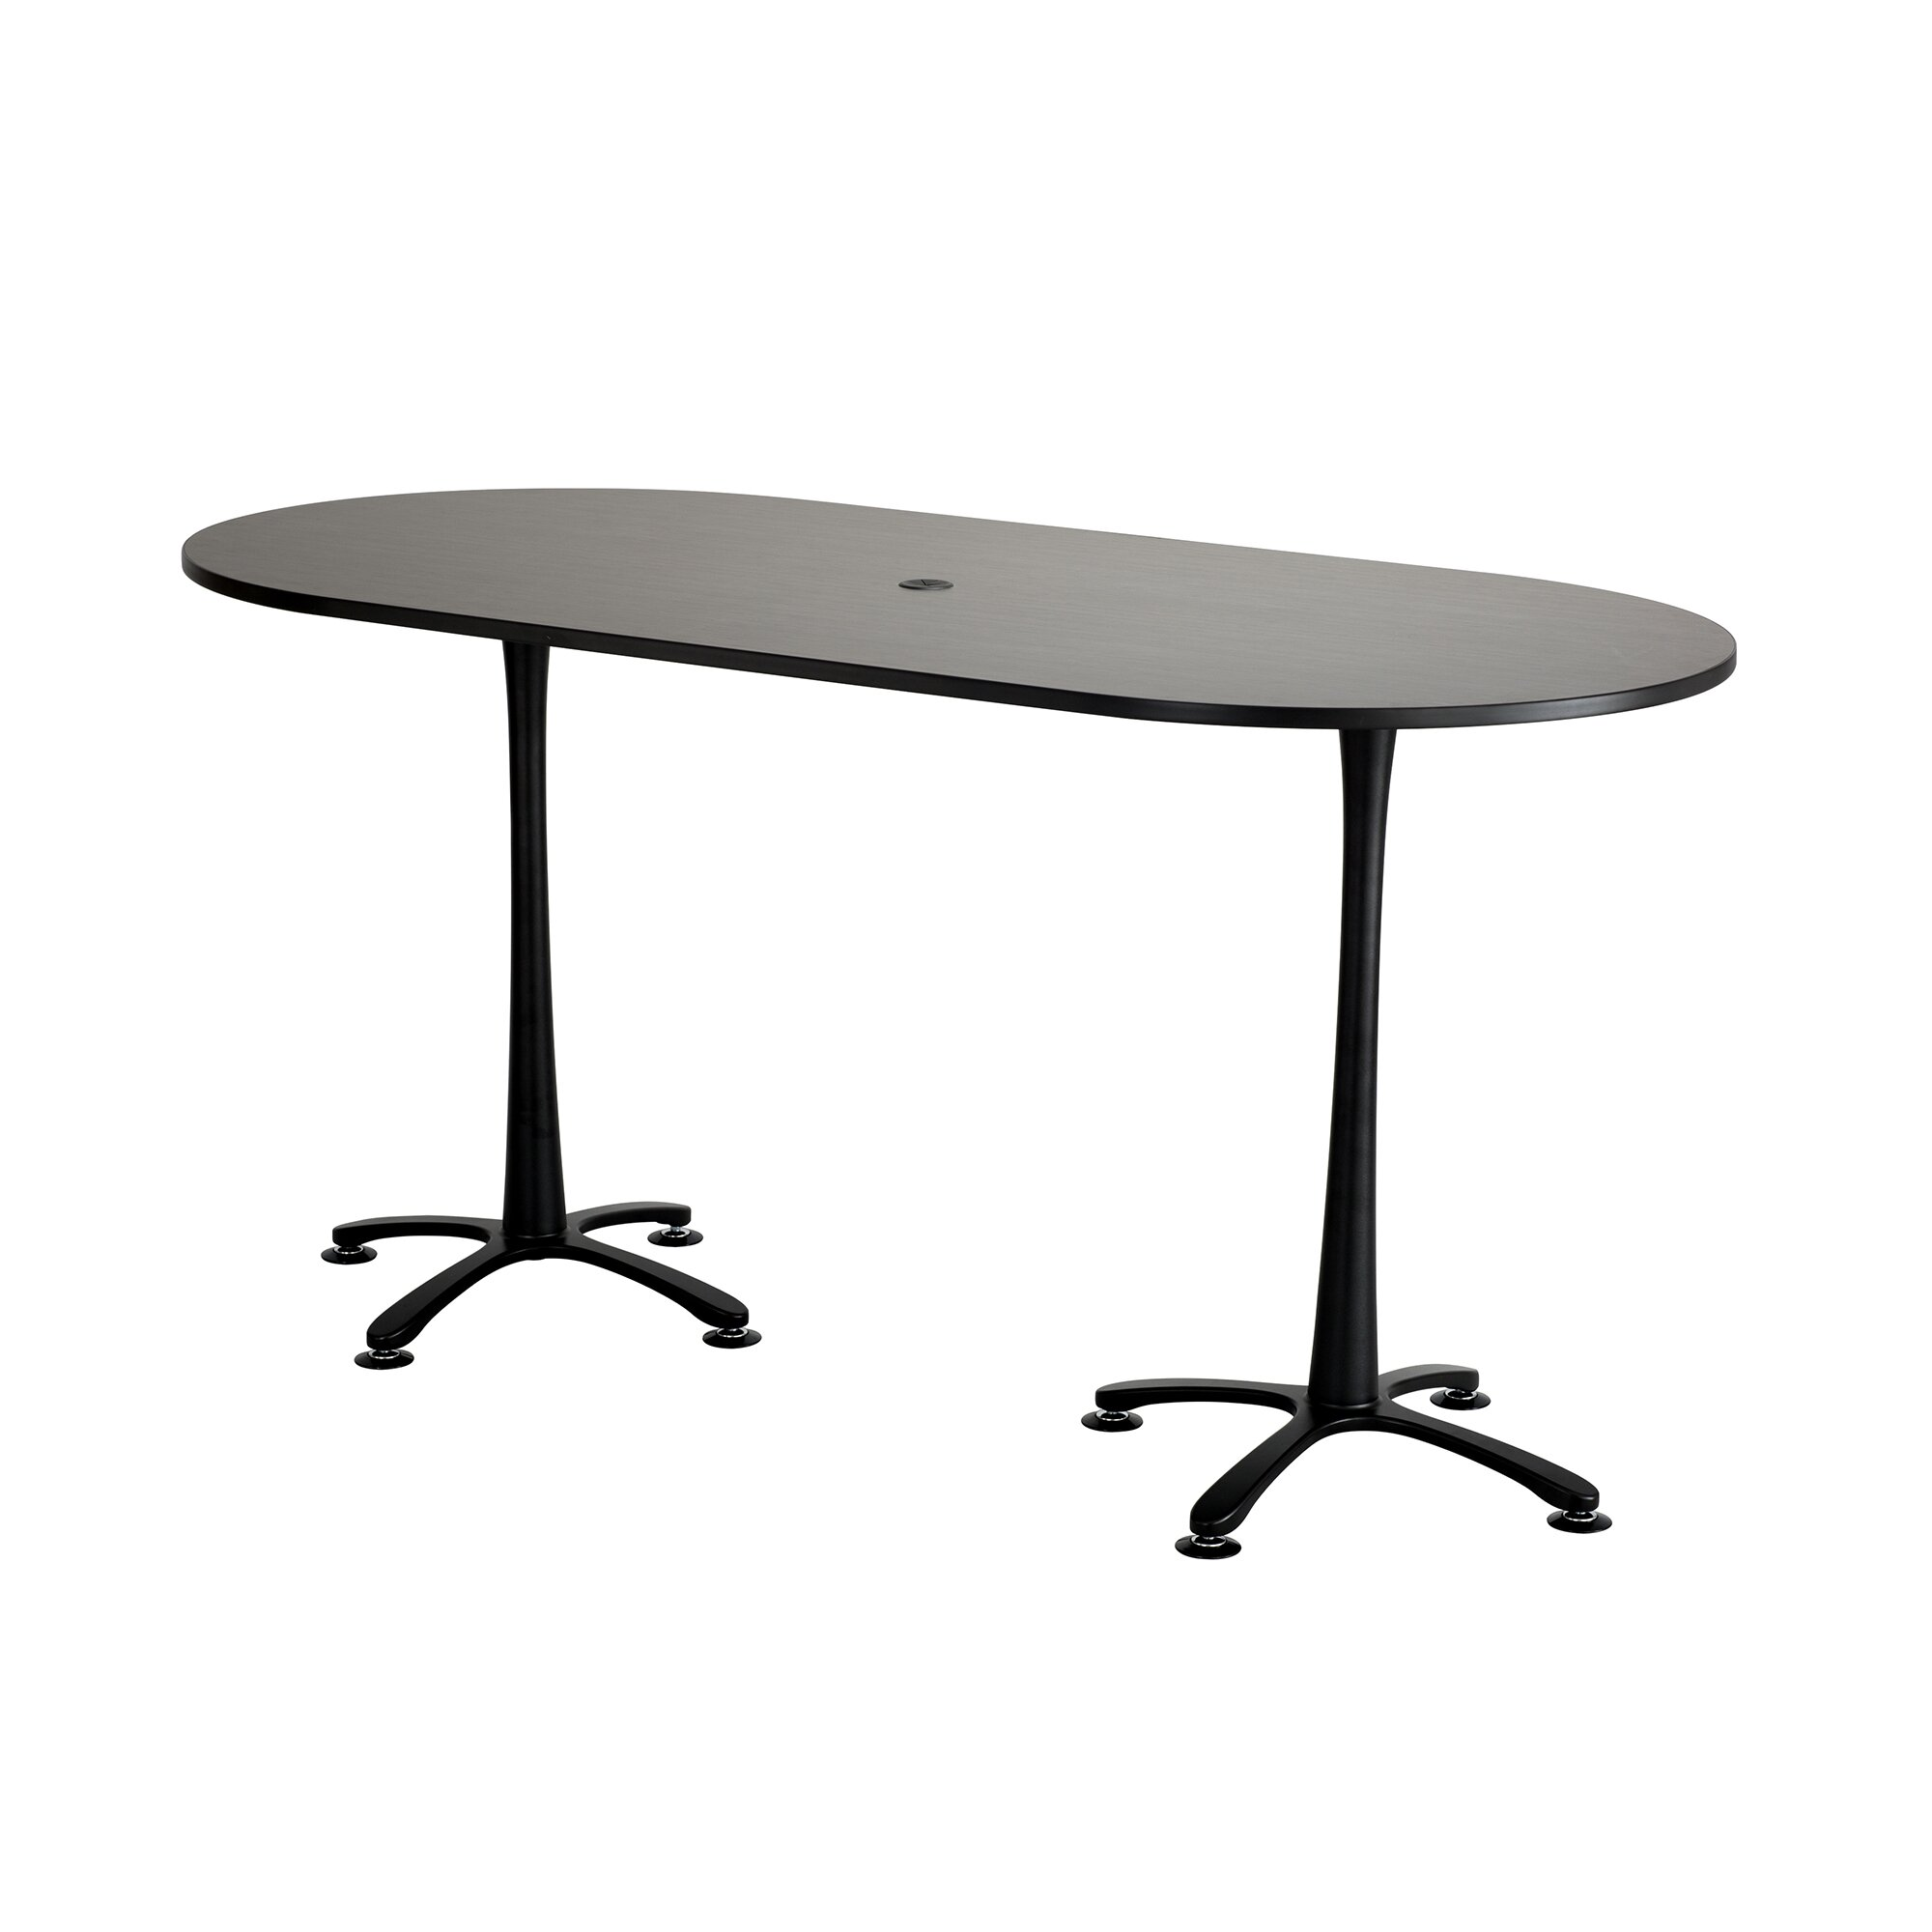 Oval conference table - Safco Products Company Cha Cha Oval Conference Table